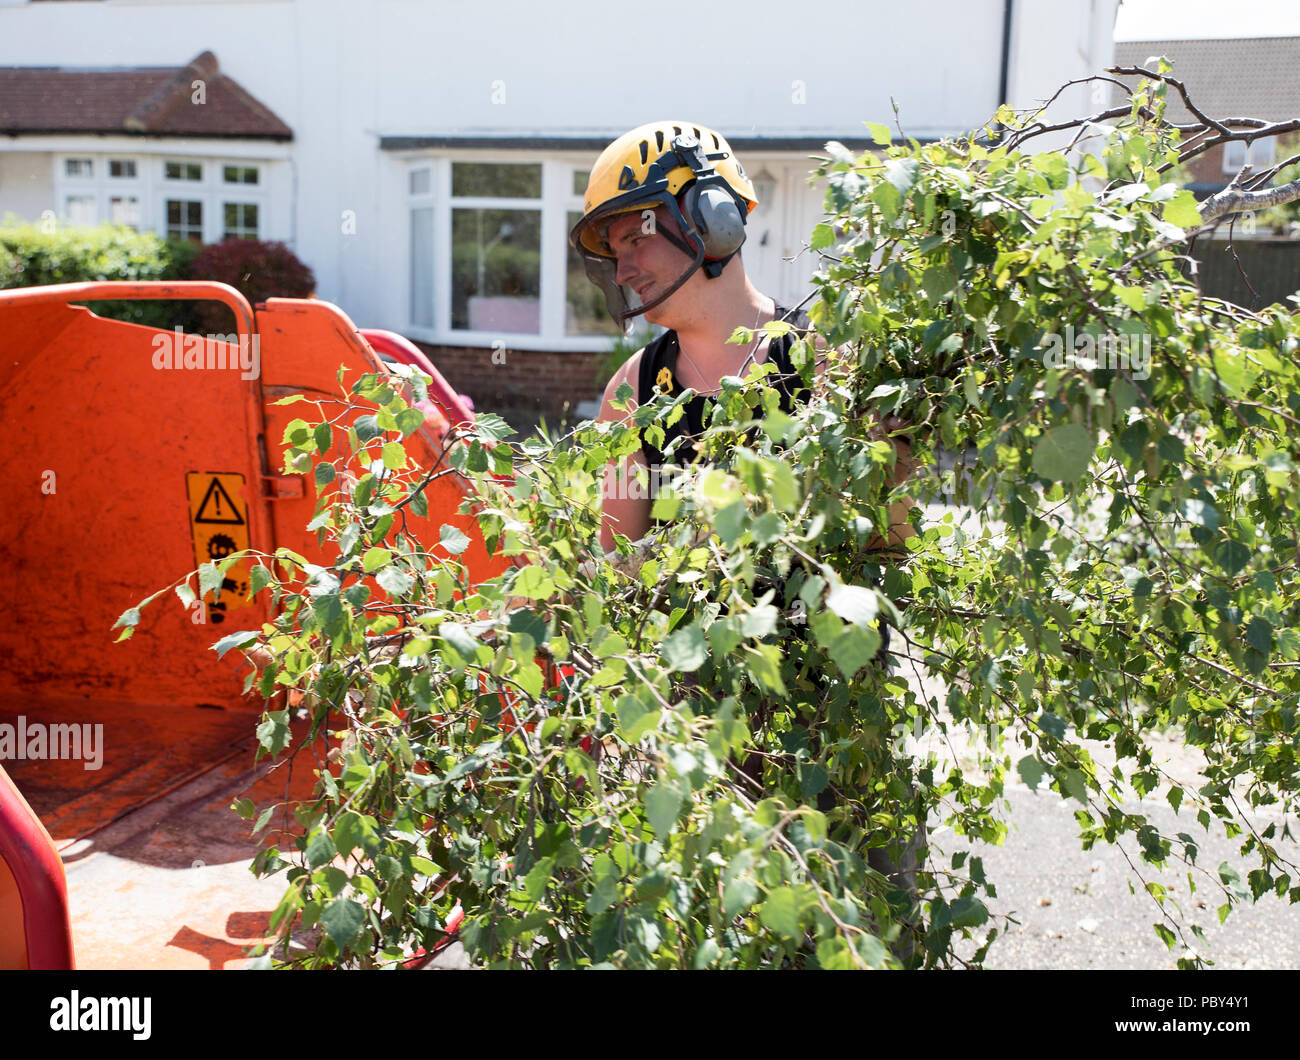 Loading small branches into a wood shredding machine - Stock Image